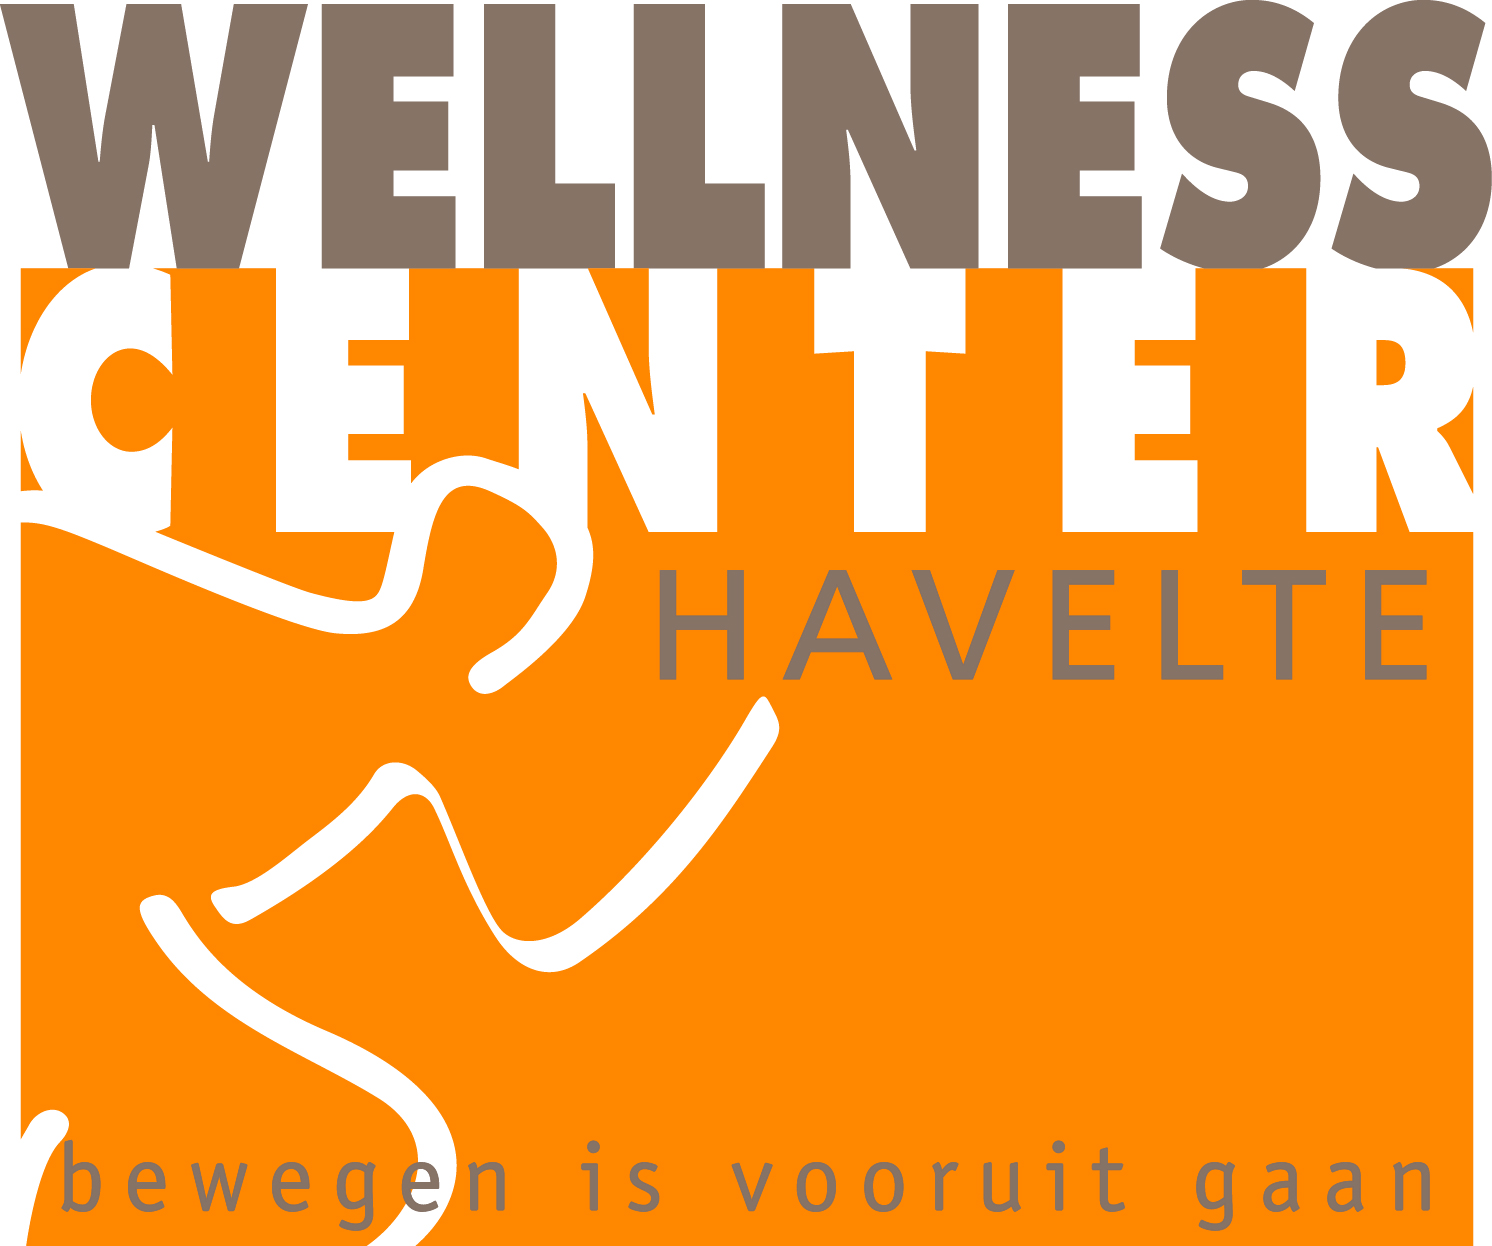 Wellnesscenter Havelte